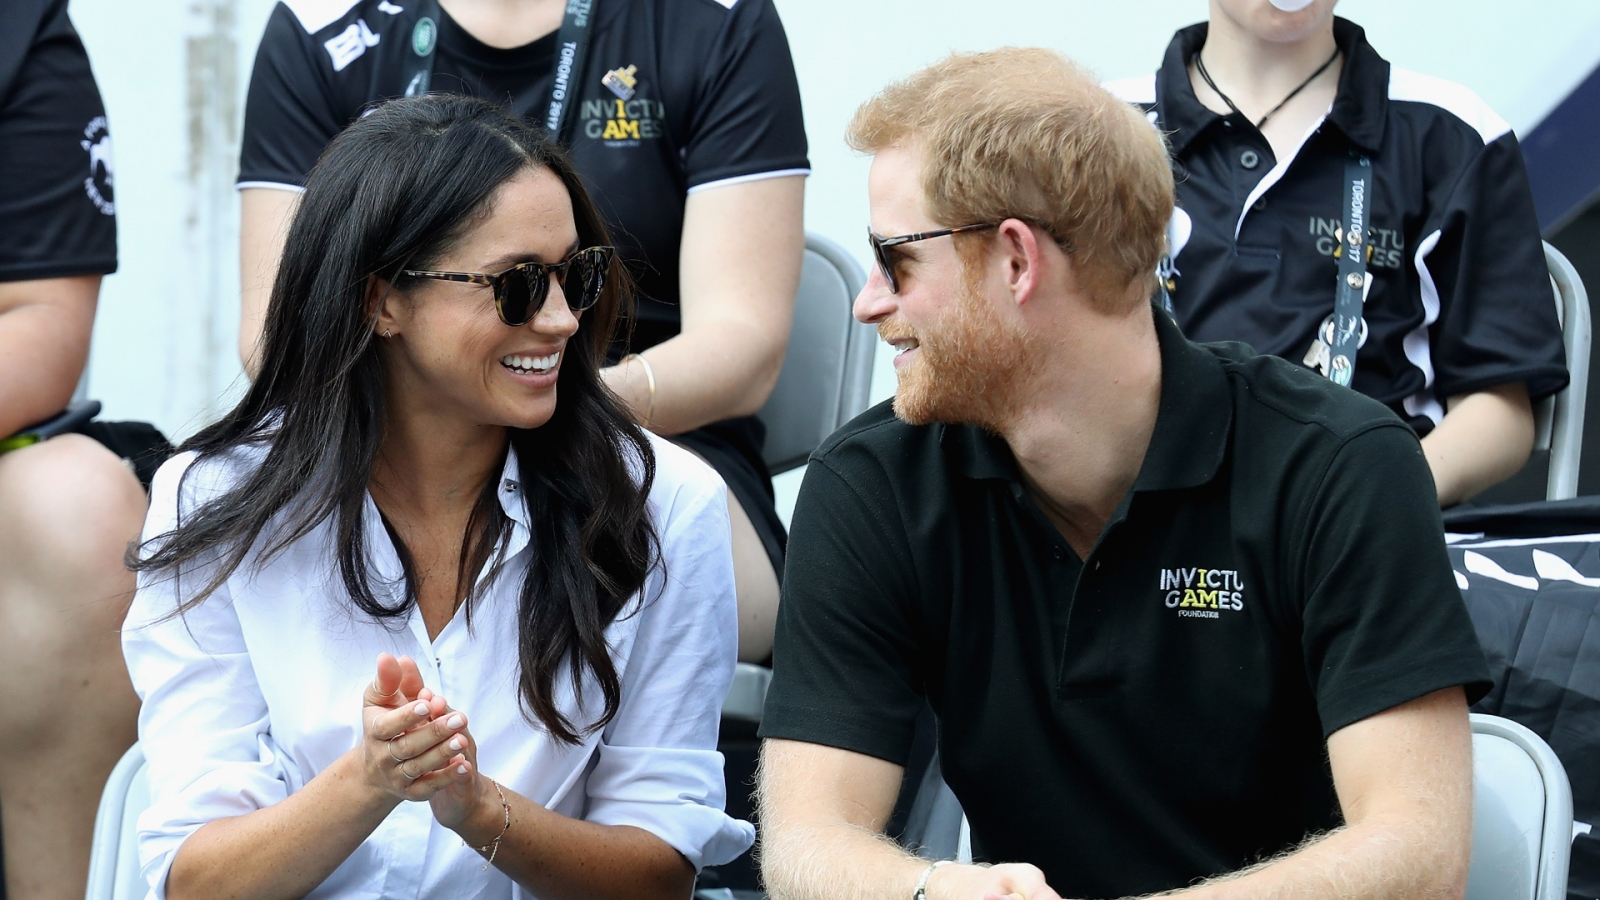 prince-harry-and-megan-markle-to-marry